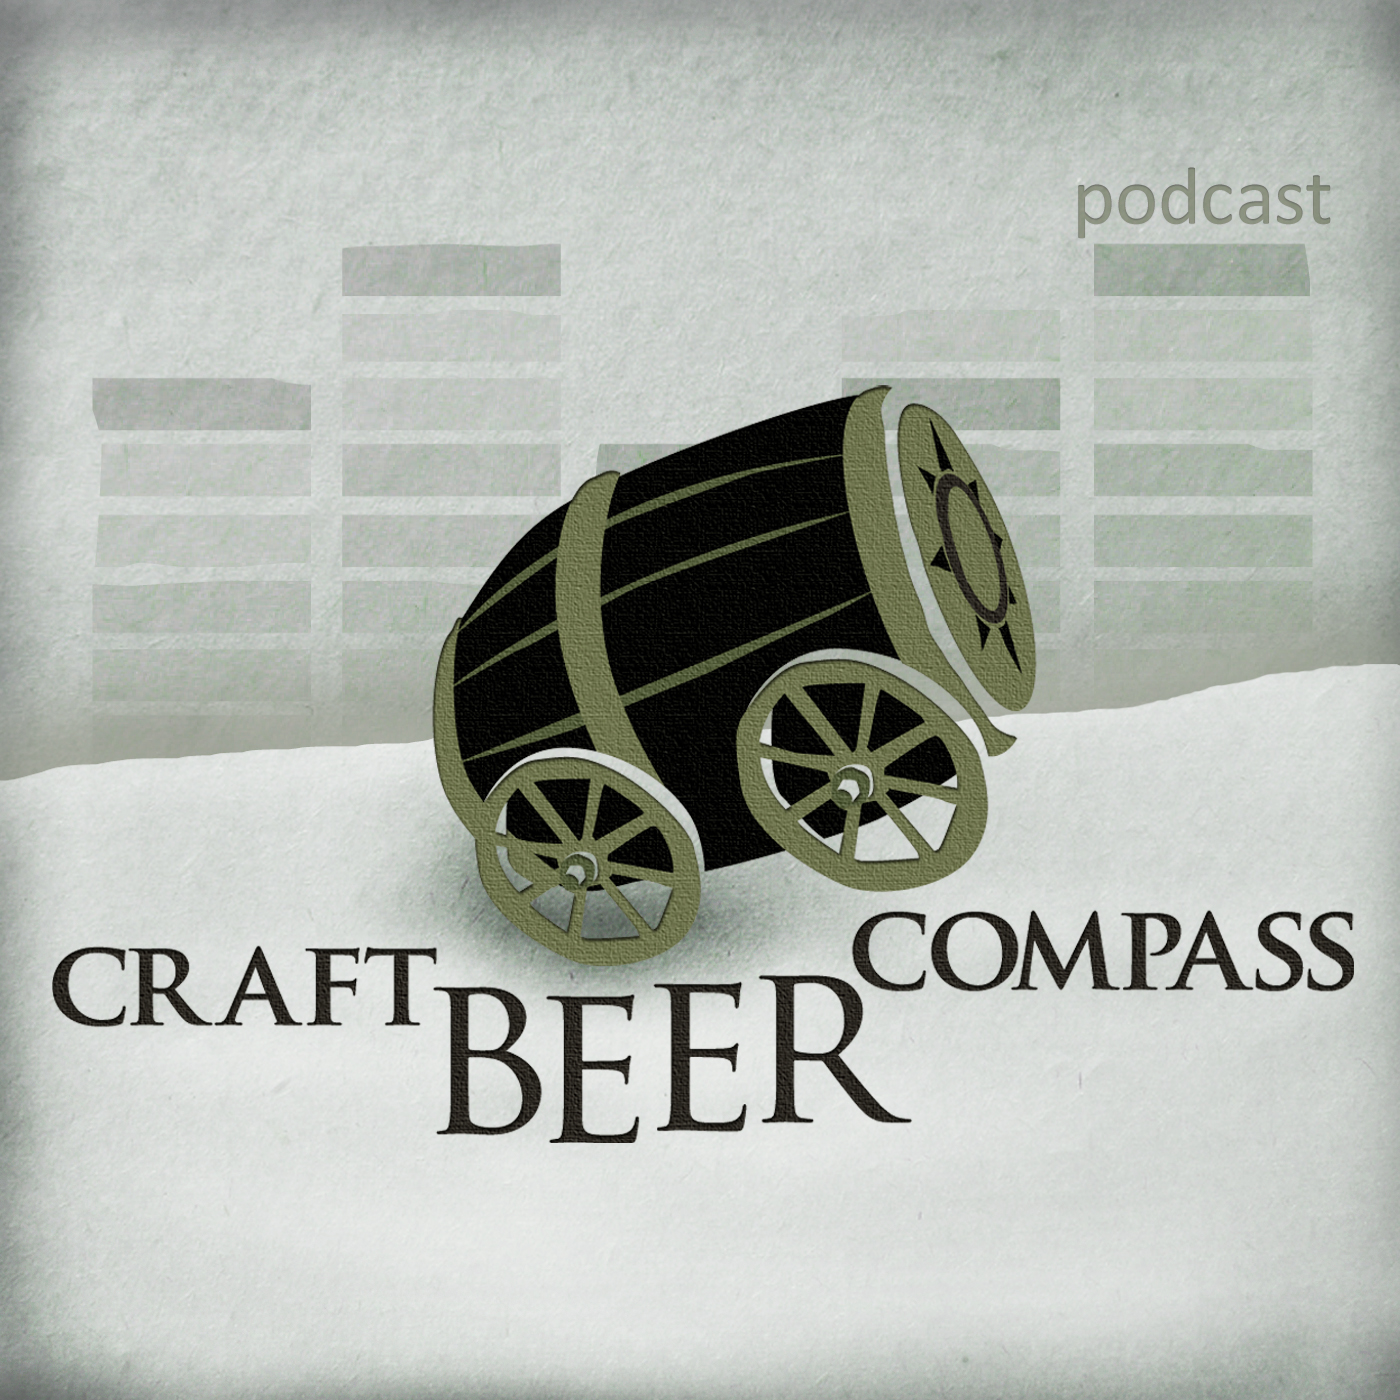 Craft Beer Compass Podcast